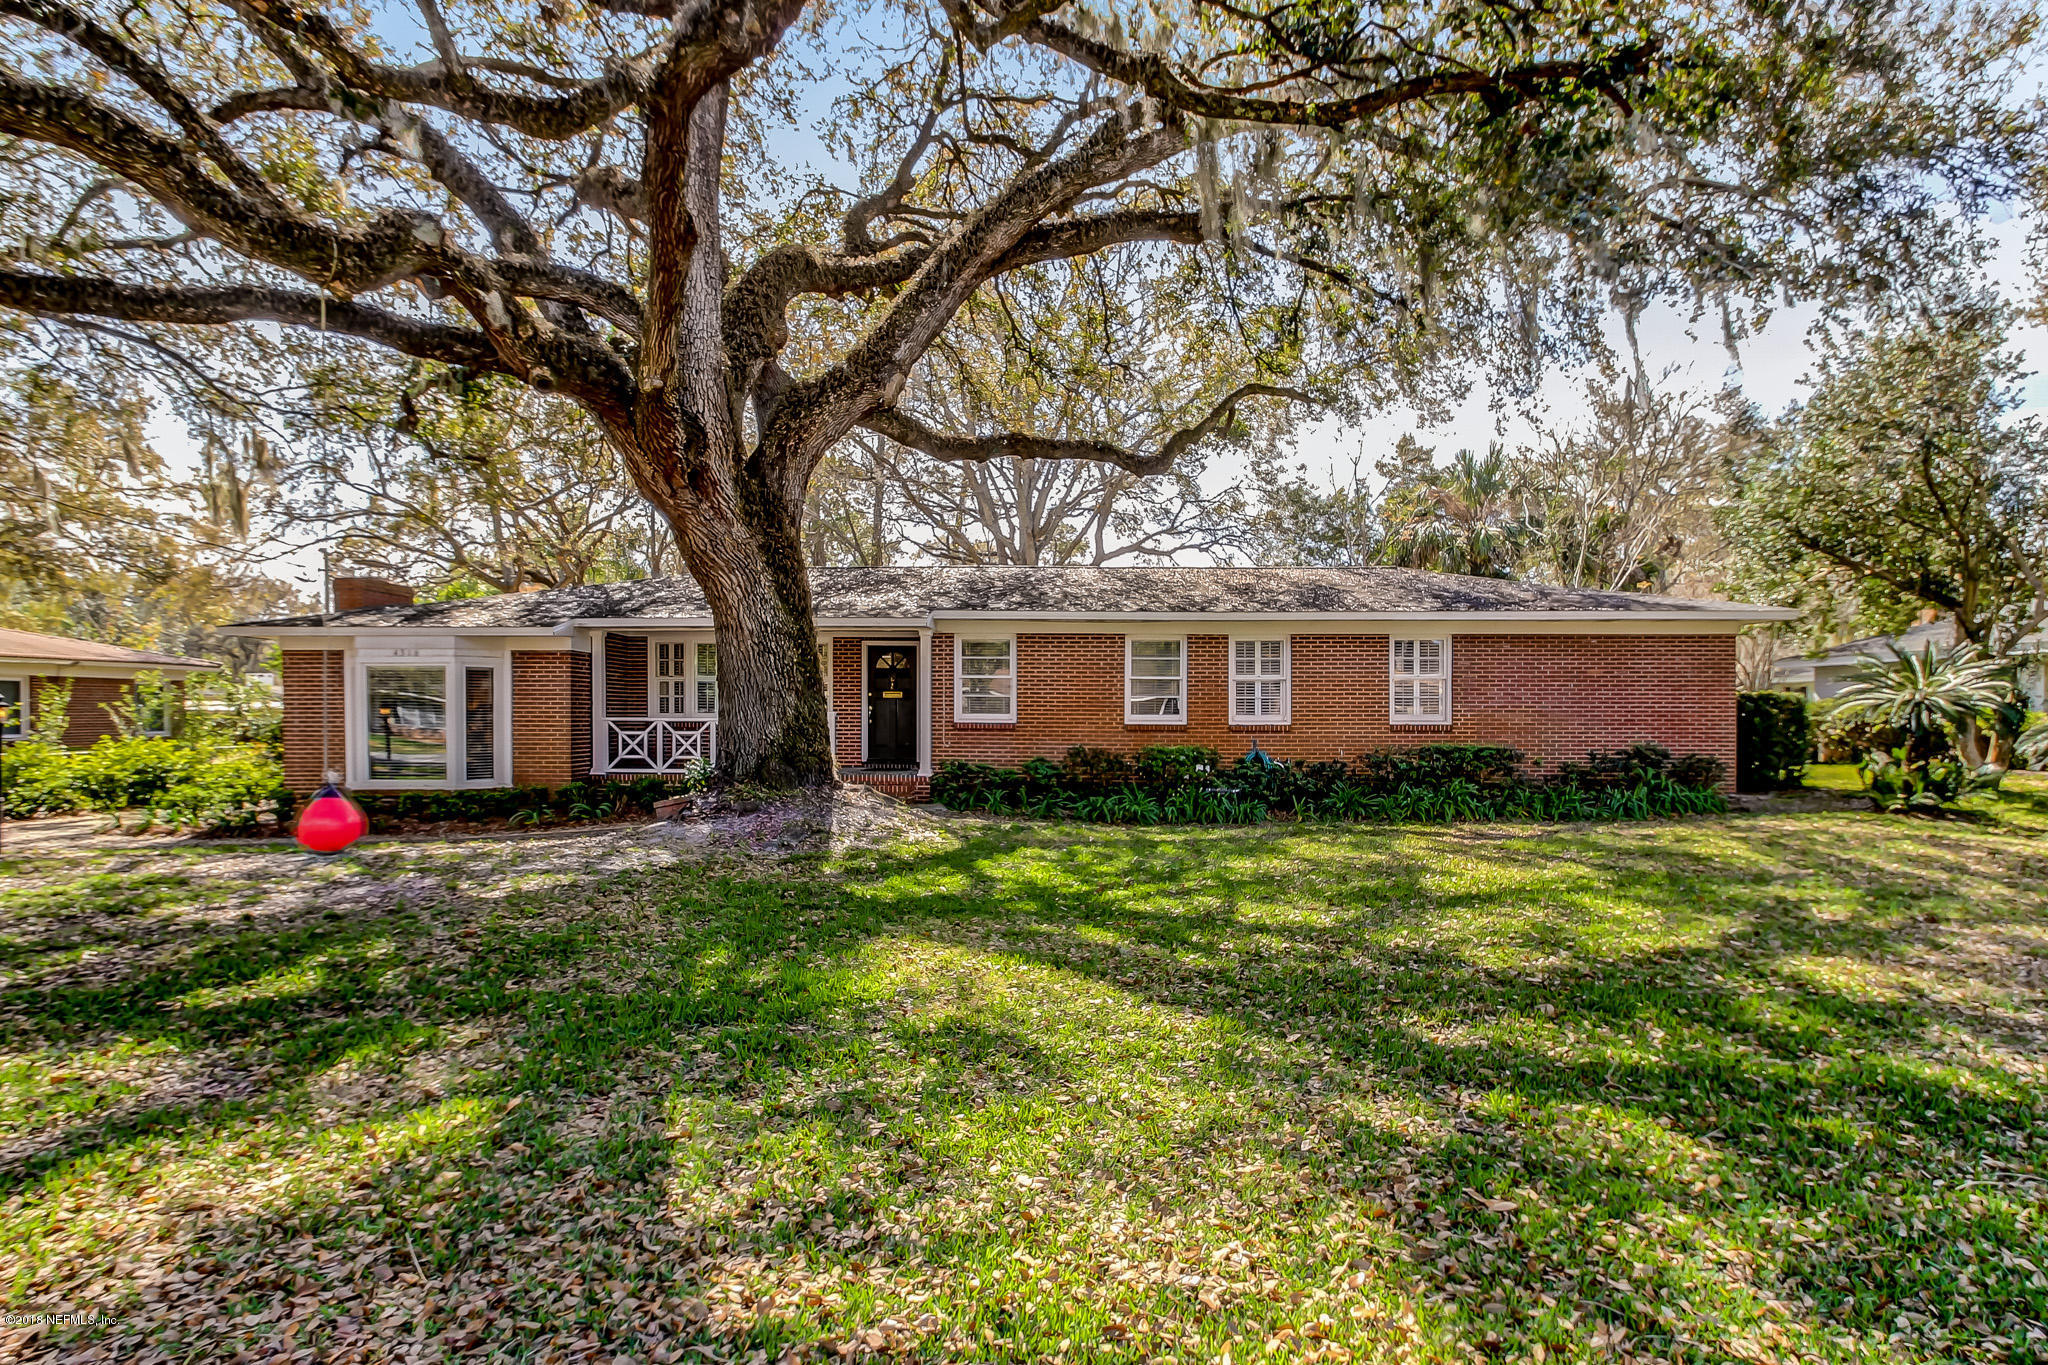 4316 WATER OAK, JACKSONVILLE, FLORIDA 32210, 3 Bedrooms Bedrooms, ,2 BathroomsBathrooms,Residential - single family,For sale,WATER OAK,951648